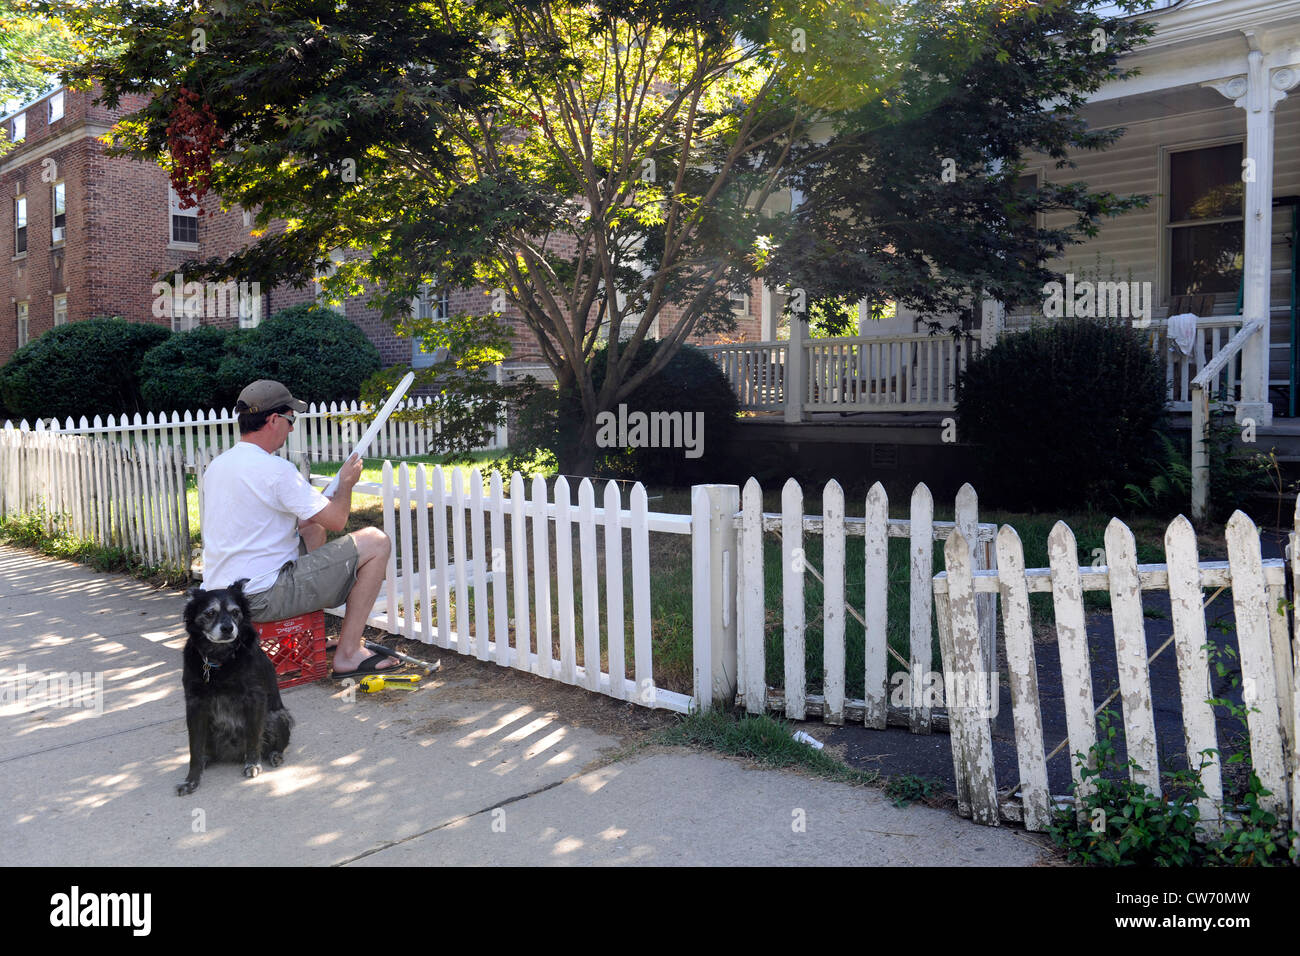 Homeowner rebuilding his fence on Orange Street in East Rock neighborhood, New Haven, CT. - Stock Image